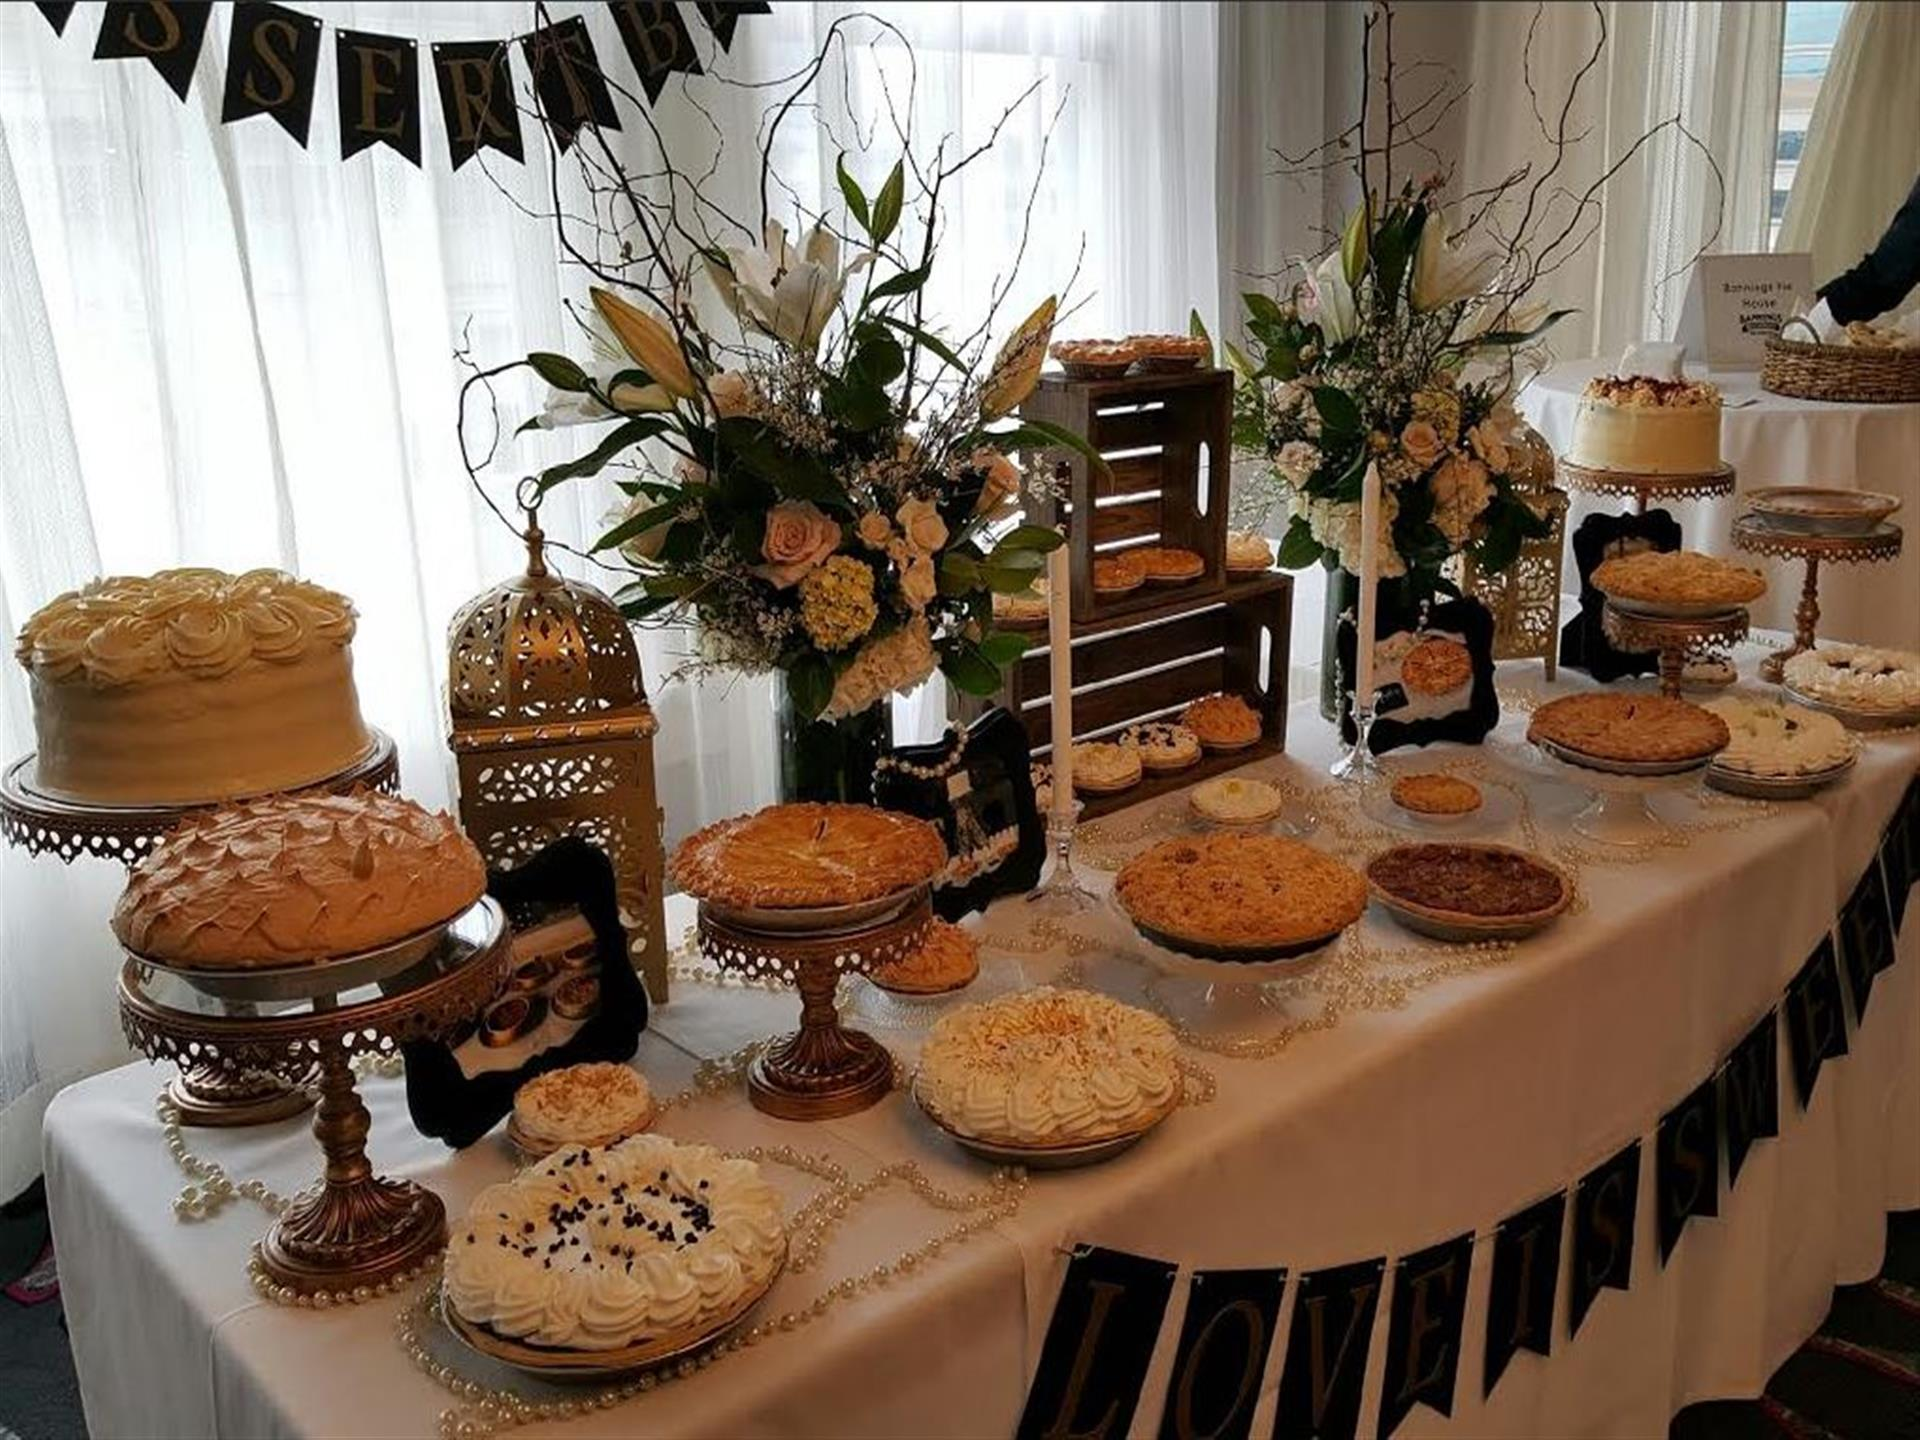 Decorate cakes and pies on display on clothed table.